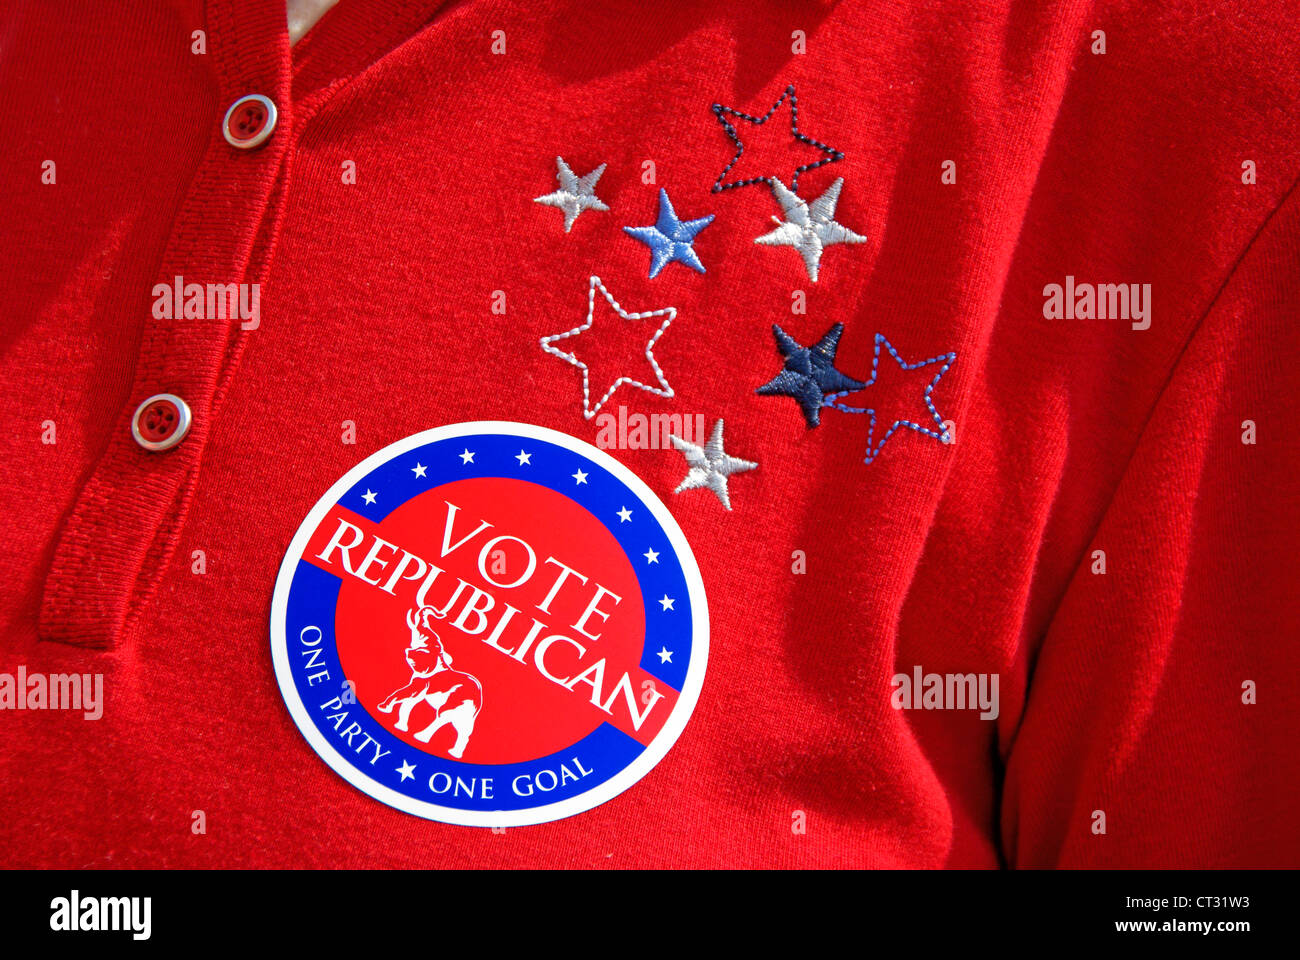 Vote Republican, one party one goal, sticker on a red T-shirt. Promotion during 4th of July celebrations 2012. - Stock Image